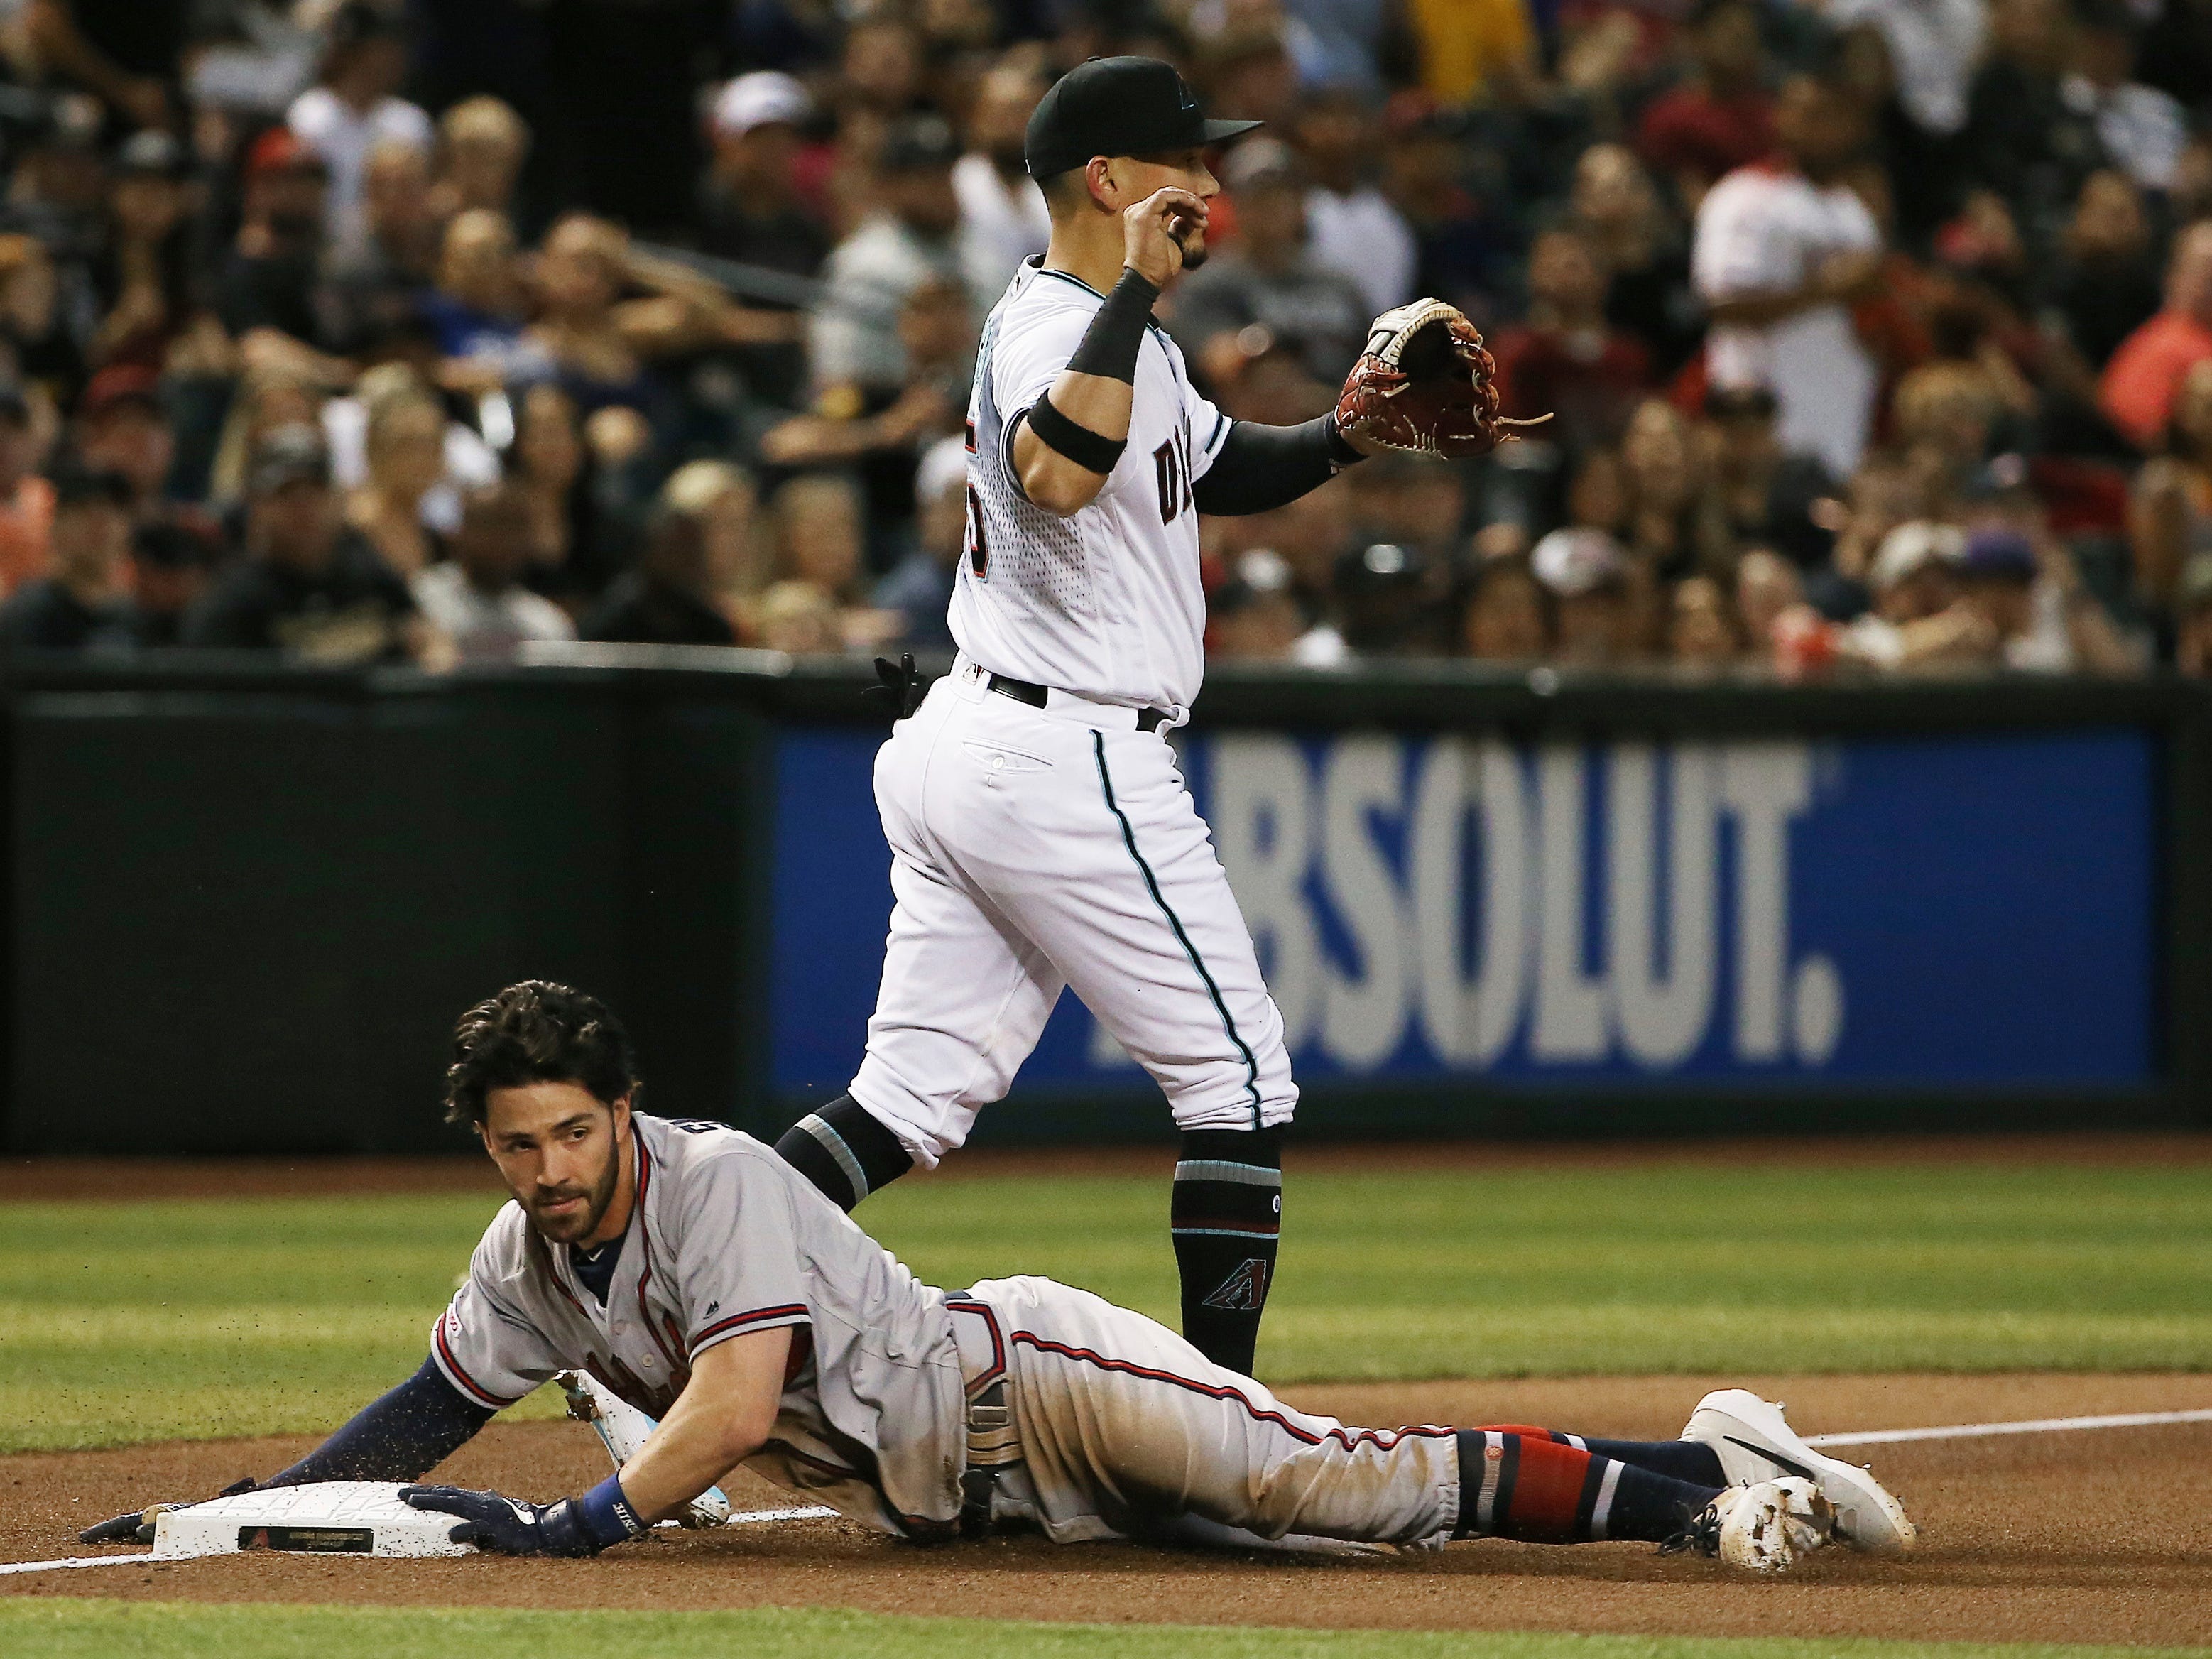 Atlanta Braves' Dansby Swanson, left, slides safely into third base with a triple as Arizona Diamondbacks third baseman Ildemaro Vargas, back, waits for a late throw during the fourth inning of a baseball game Friday, May 10, 2019, in Phoenix. (AP Photo/Ross D. Franklin)